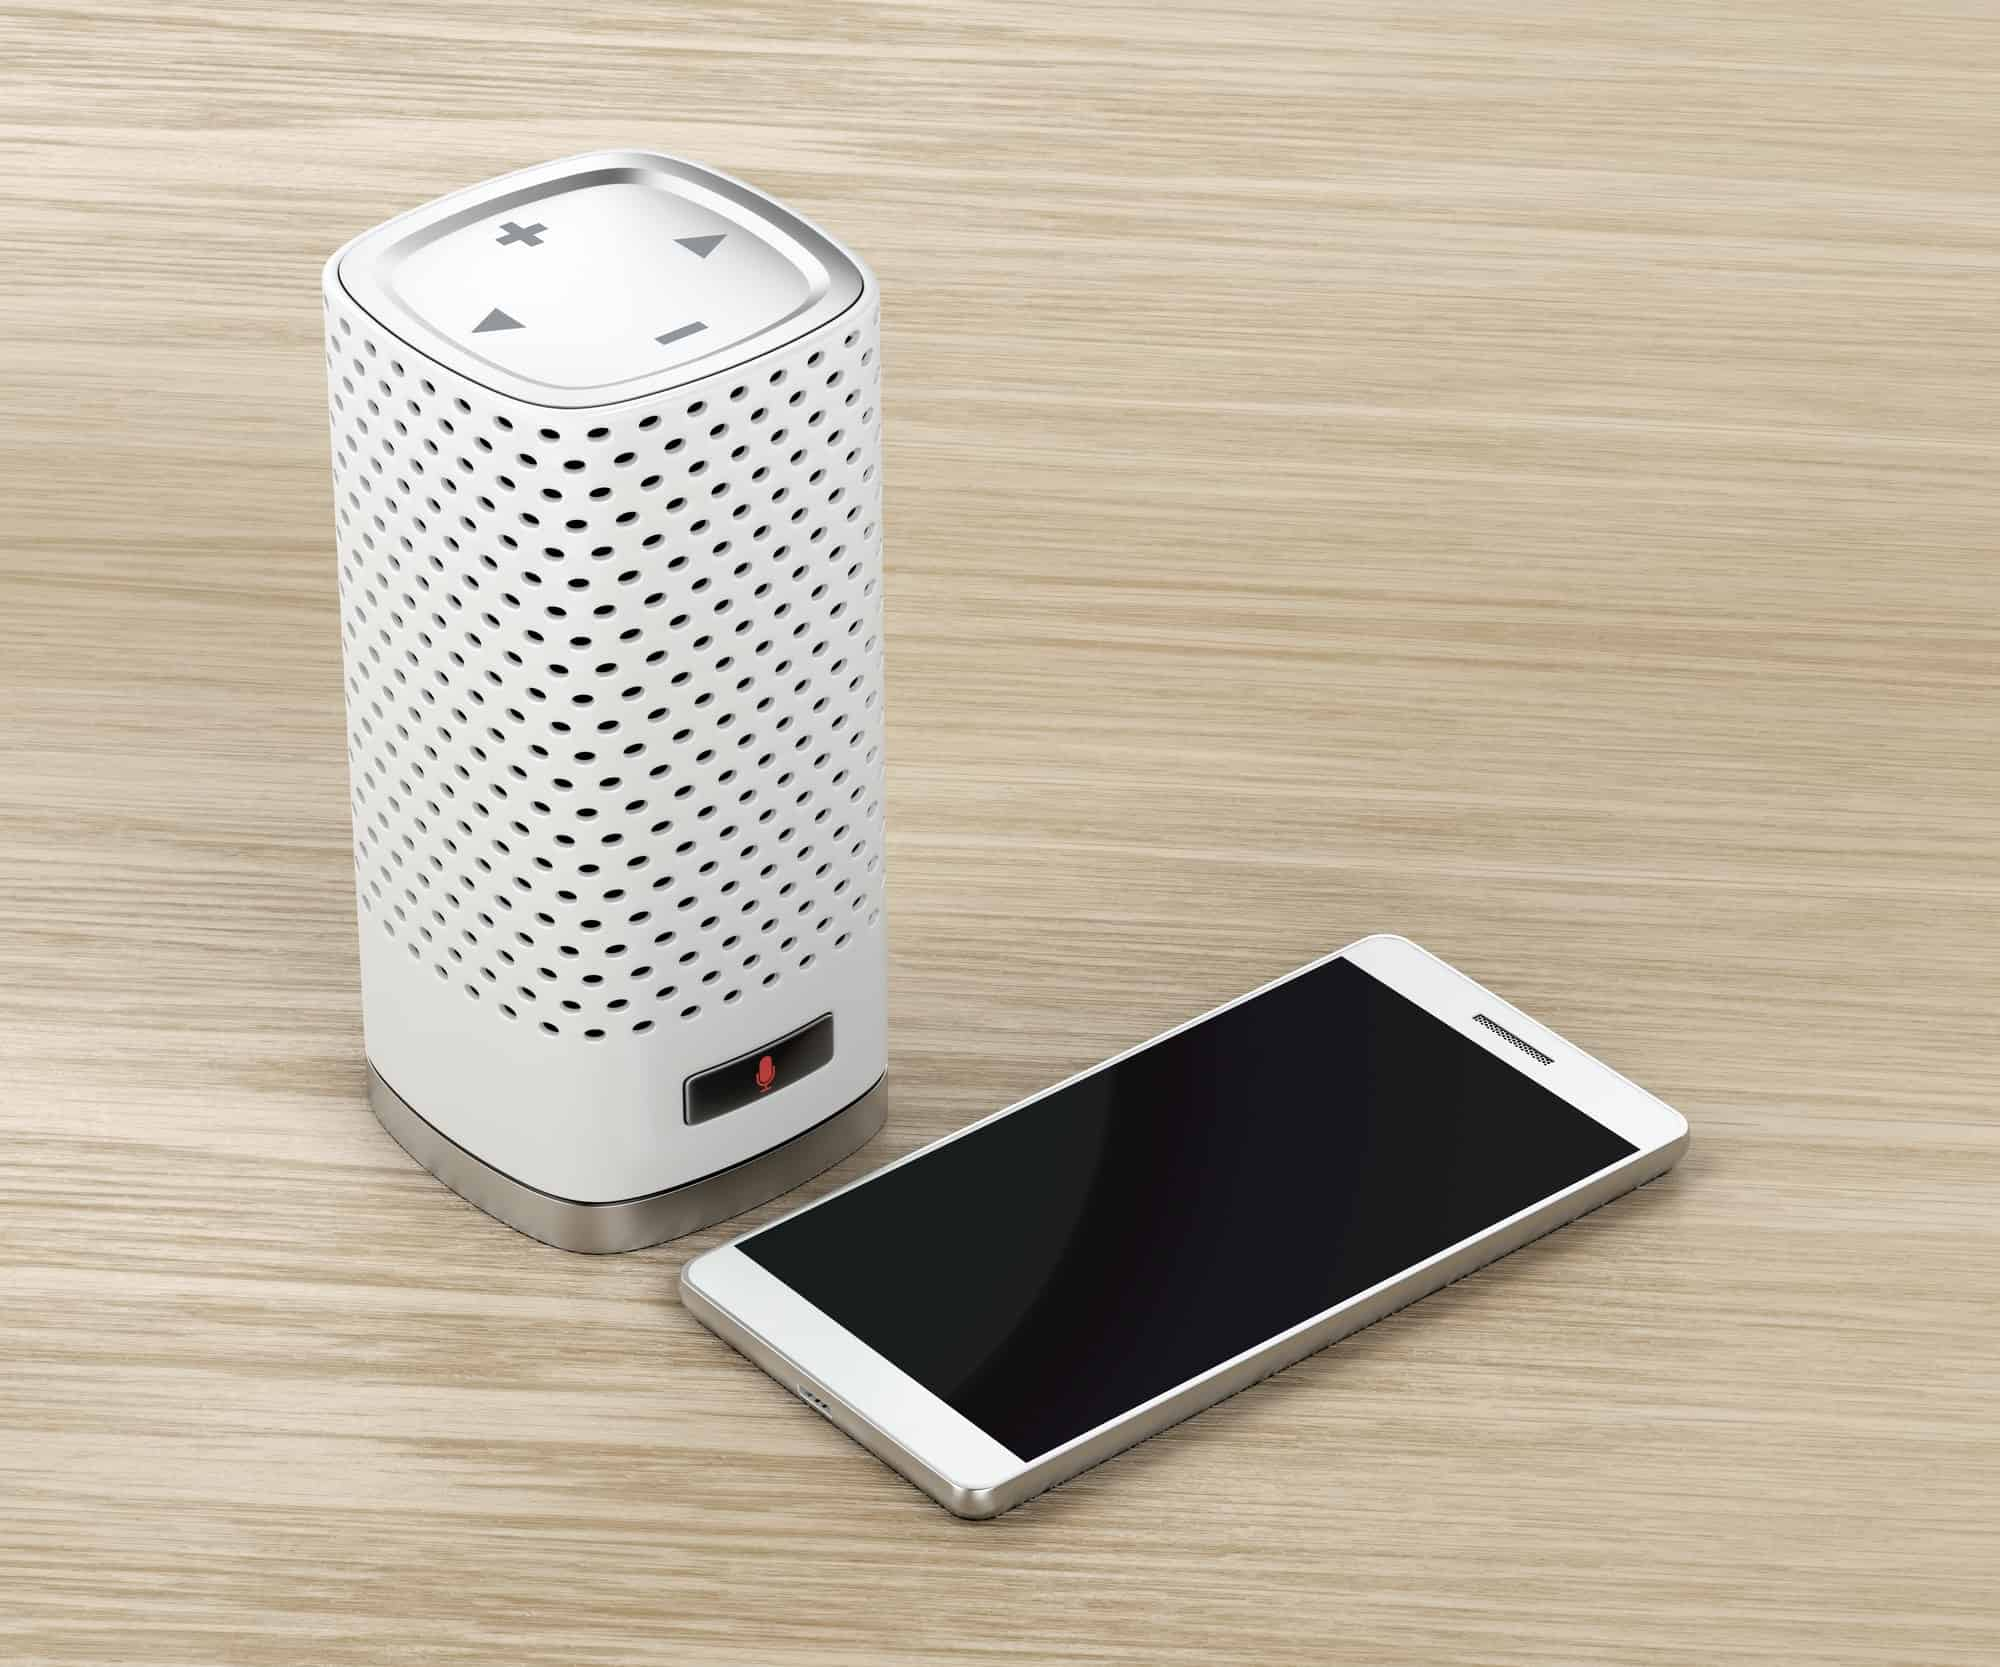 Connect Multiple Bluetooth Speakers To My iPhone